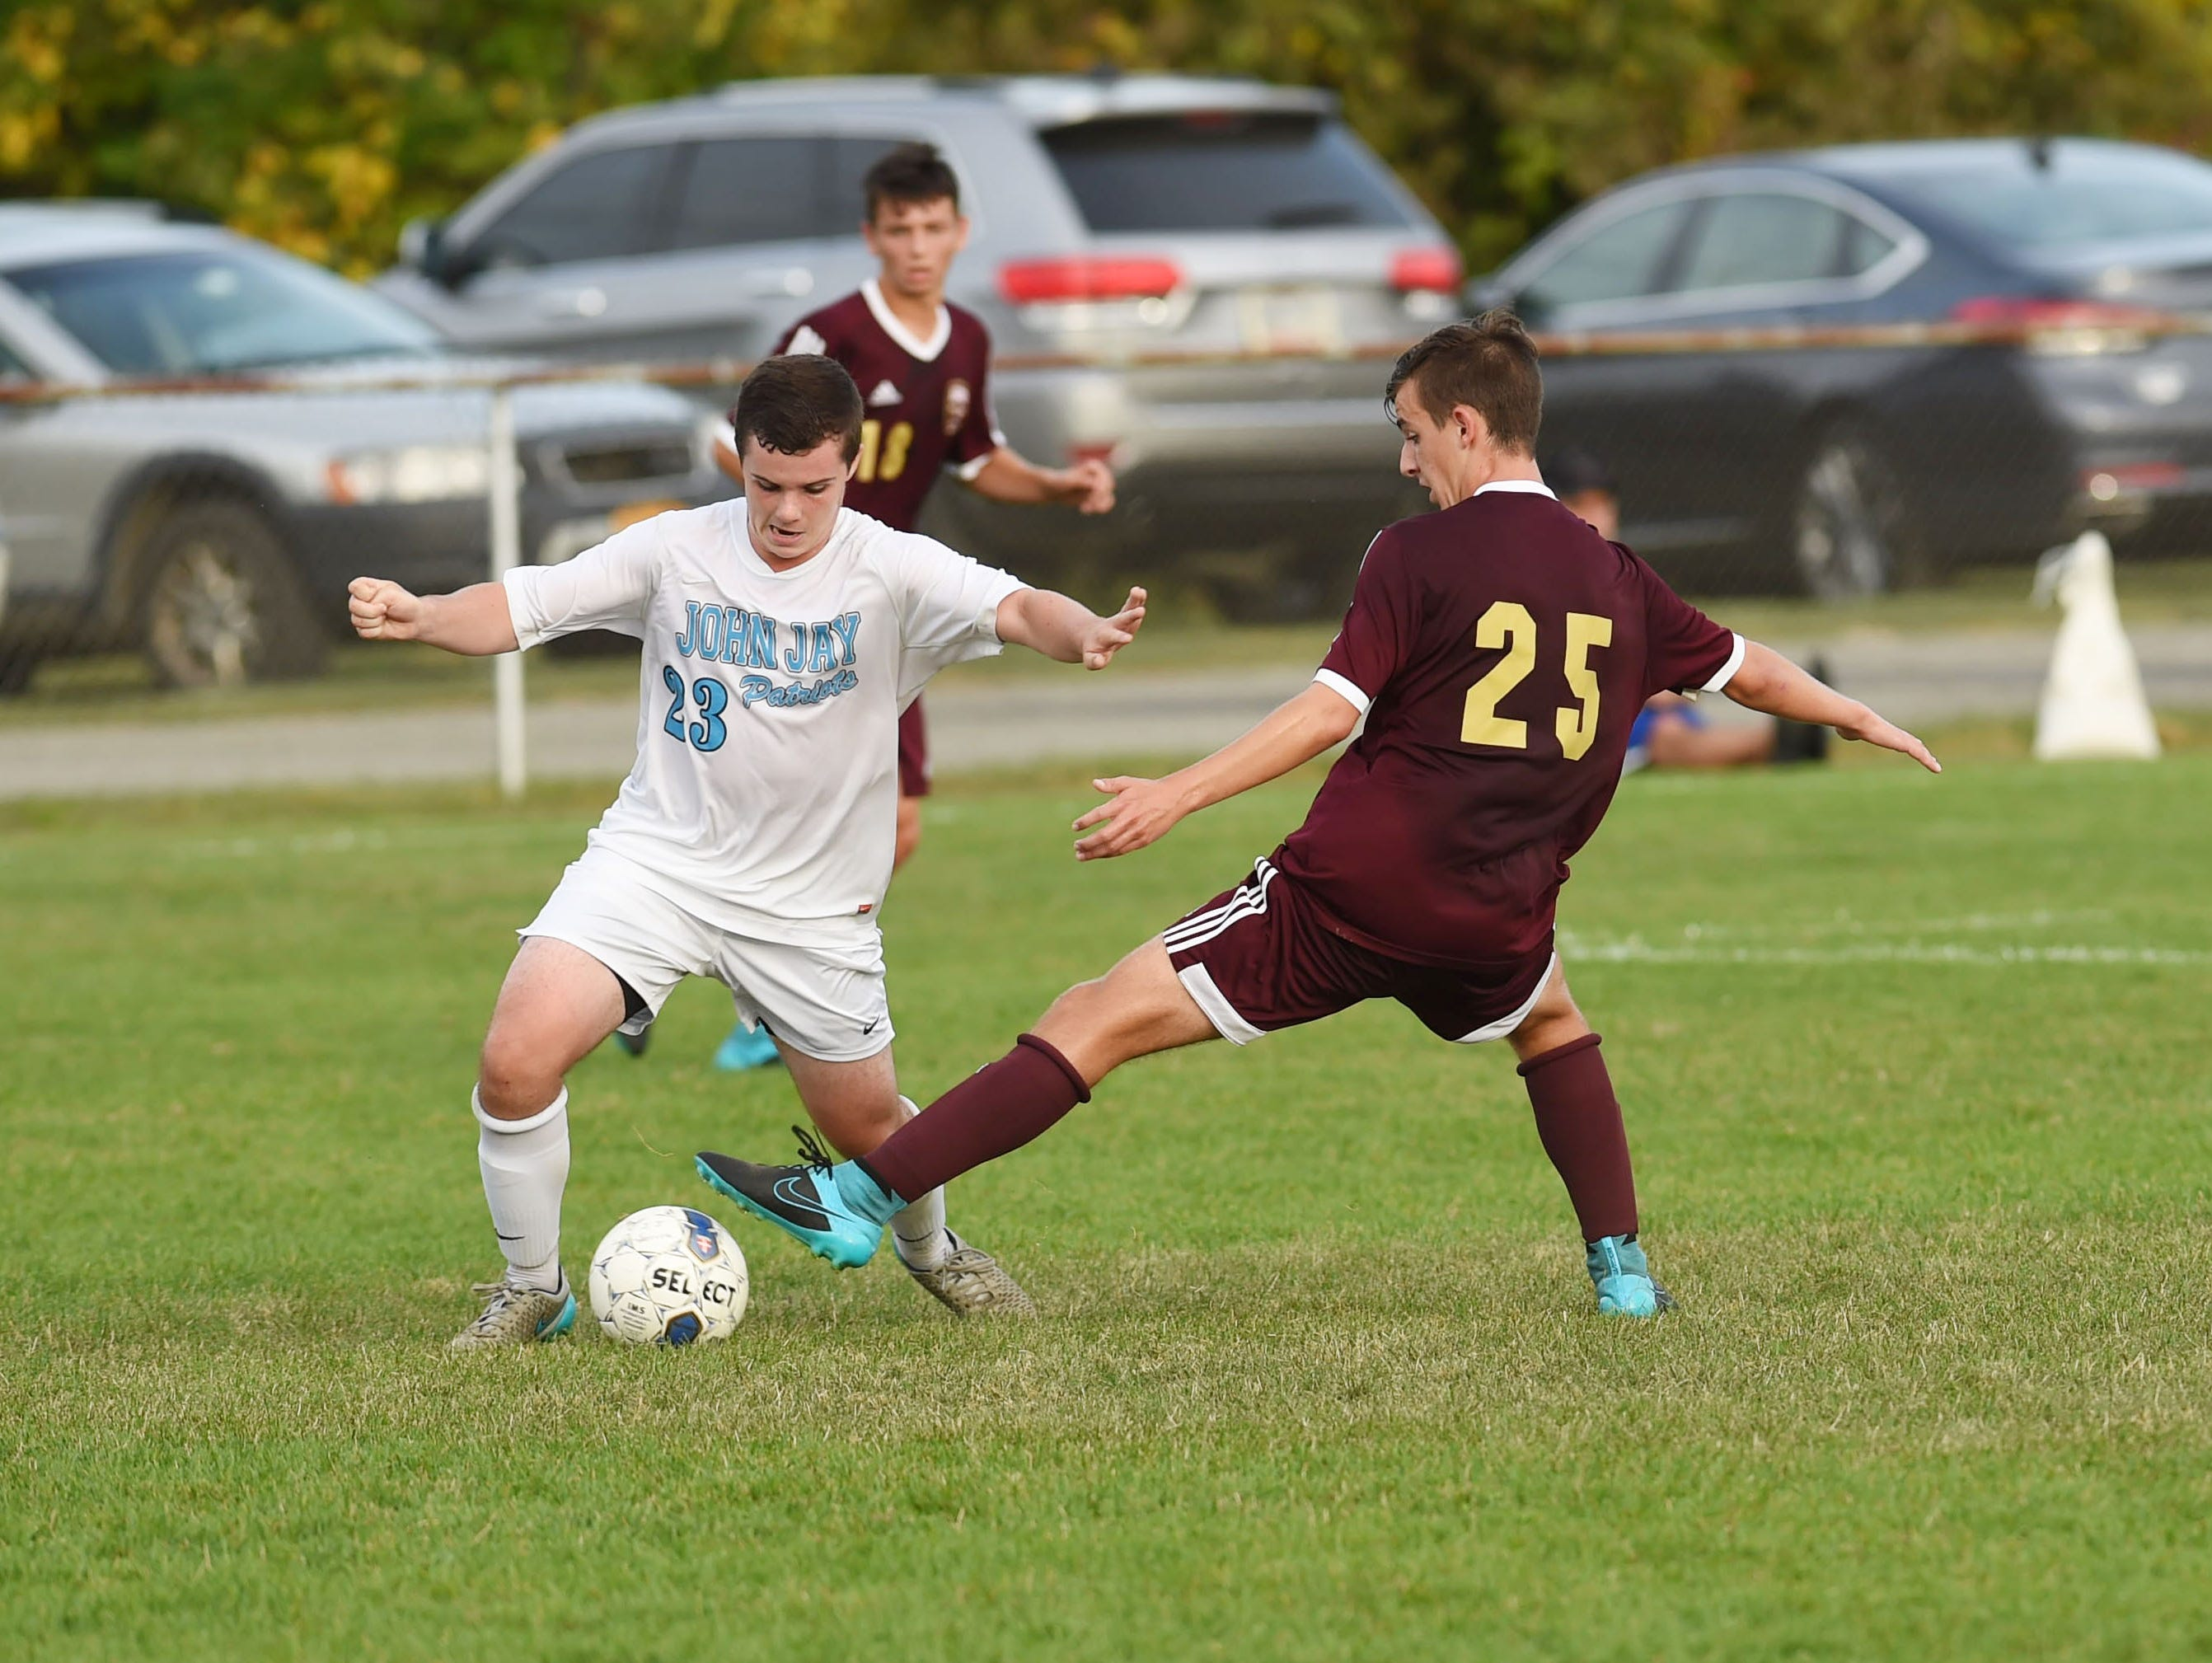 John Jay's Kevin Turi, left, tries to keep the ball away from Arlington's Paul Makaj, right, during Monday's game.